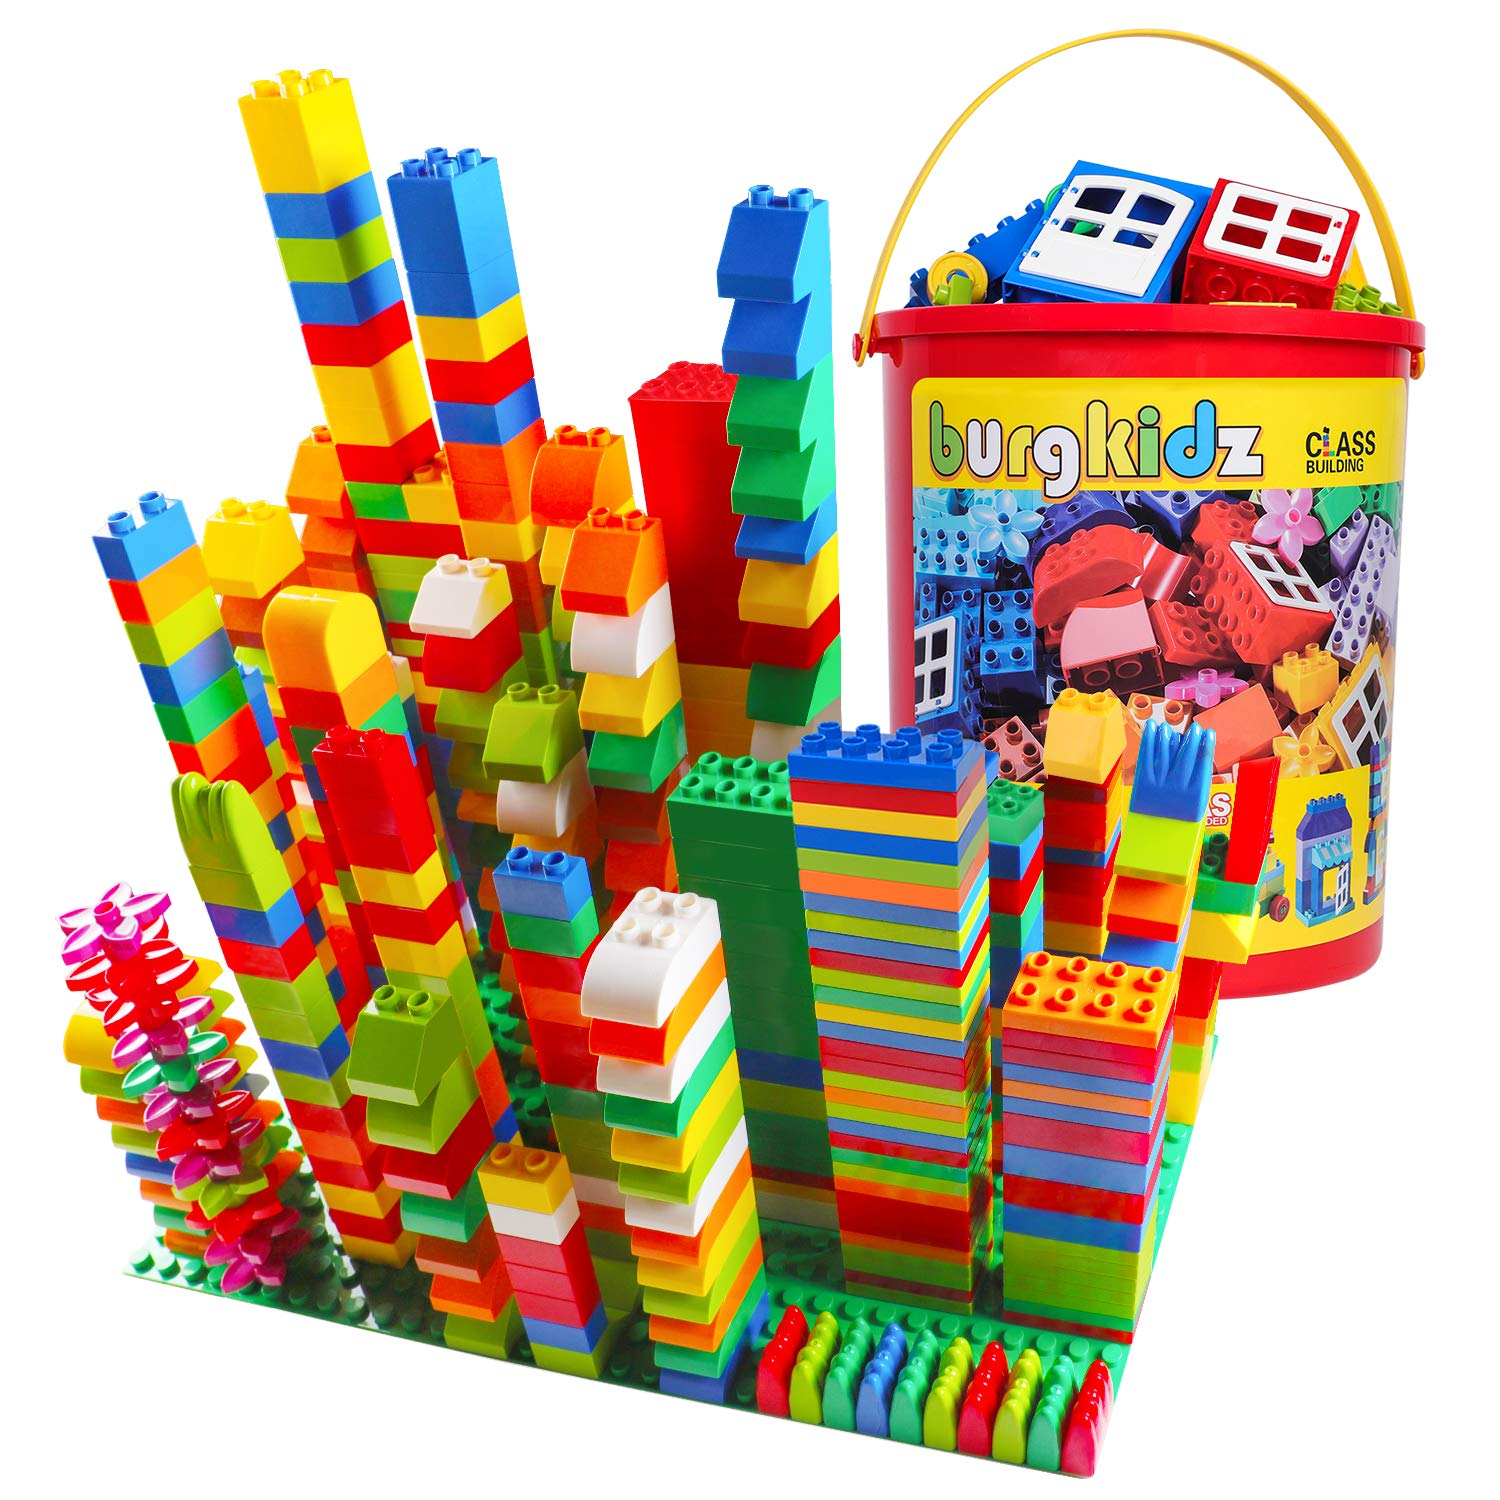 burgkidz Big Building Block Sets - 214 Pieces Toddler Educational Toy Classic Large Sizes Building Blocks Bricks - 13 Fun Shapes and Storage Bucket - Compatible with All Major Brands by burgkidz (Image #1)